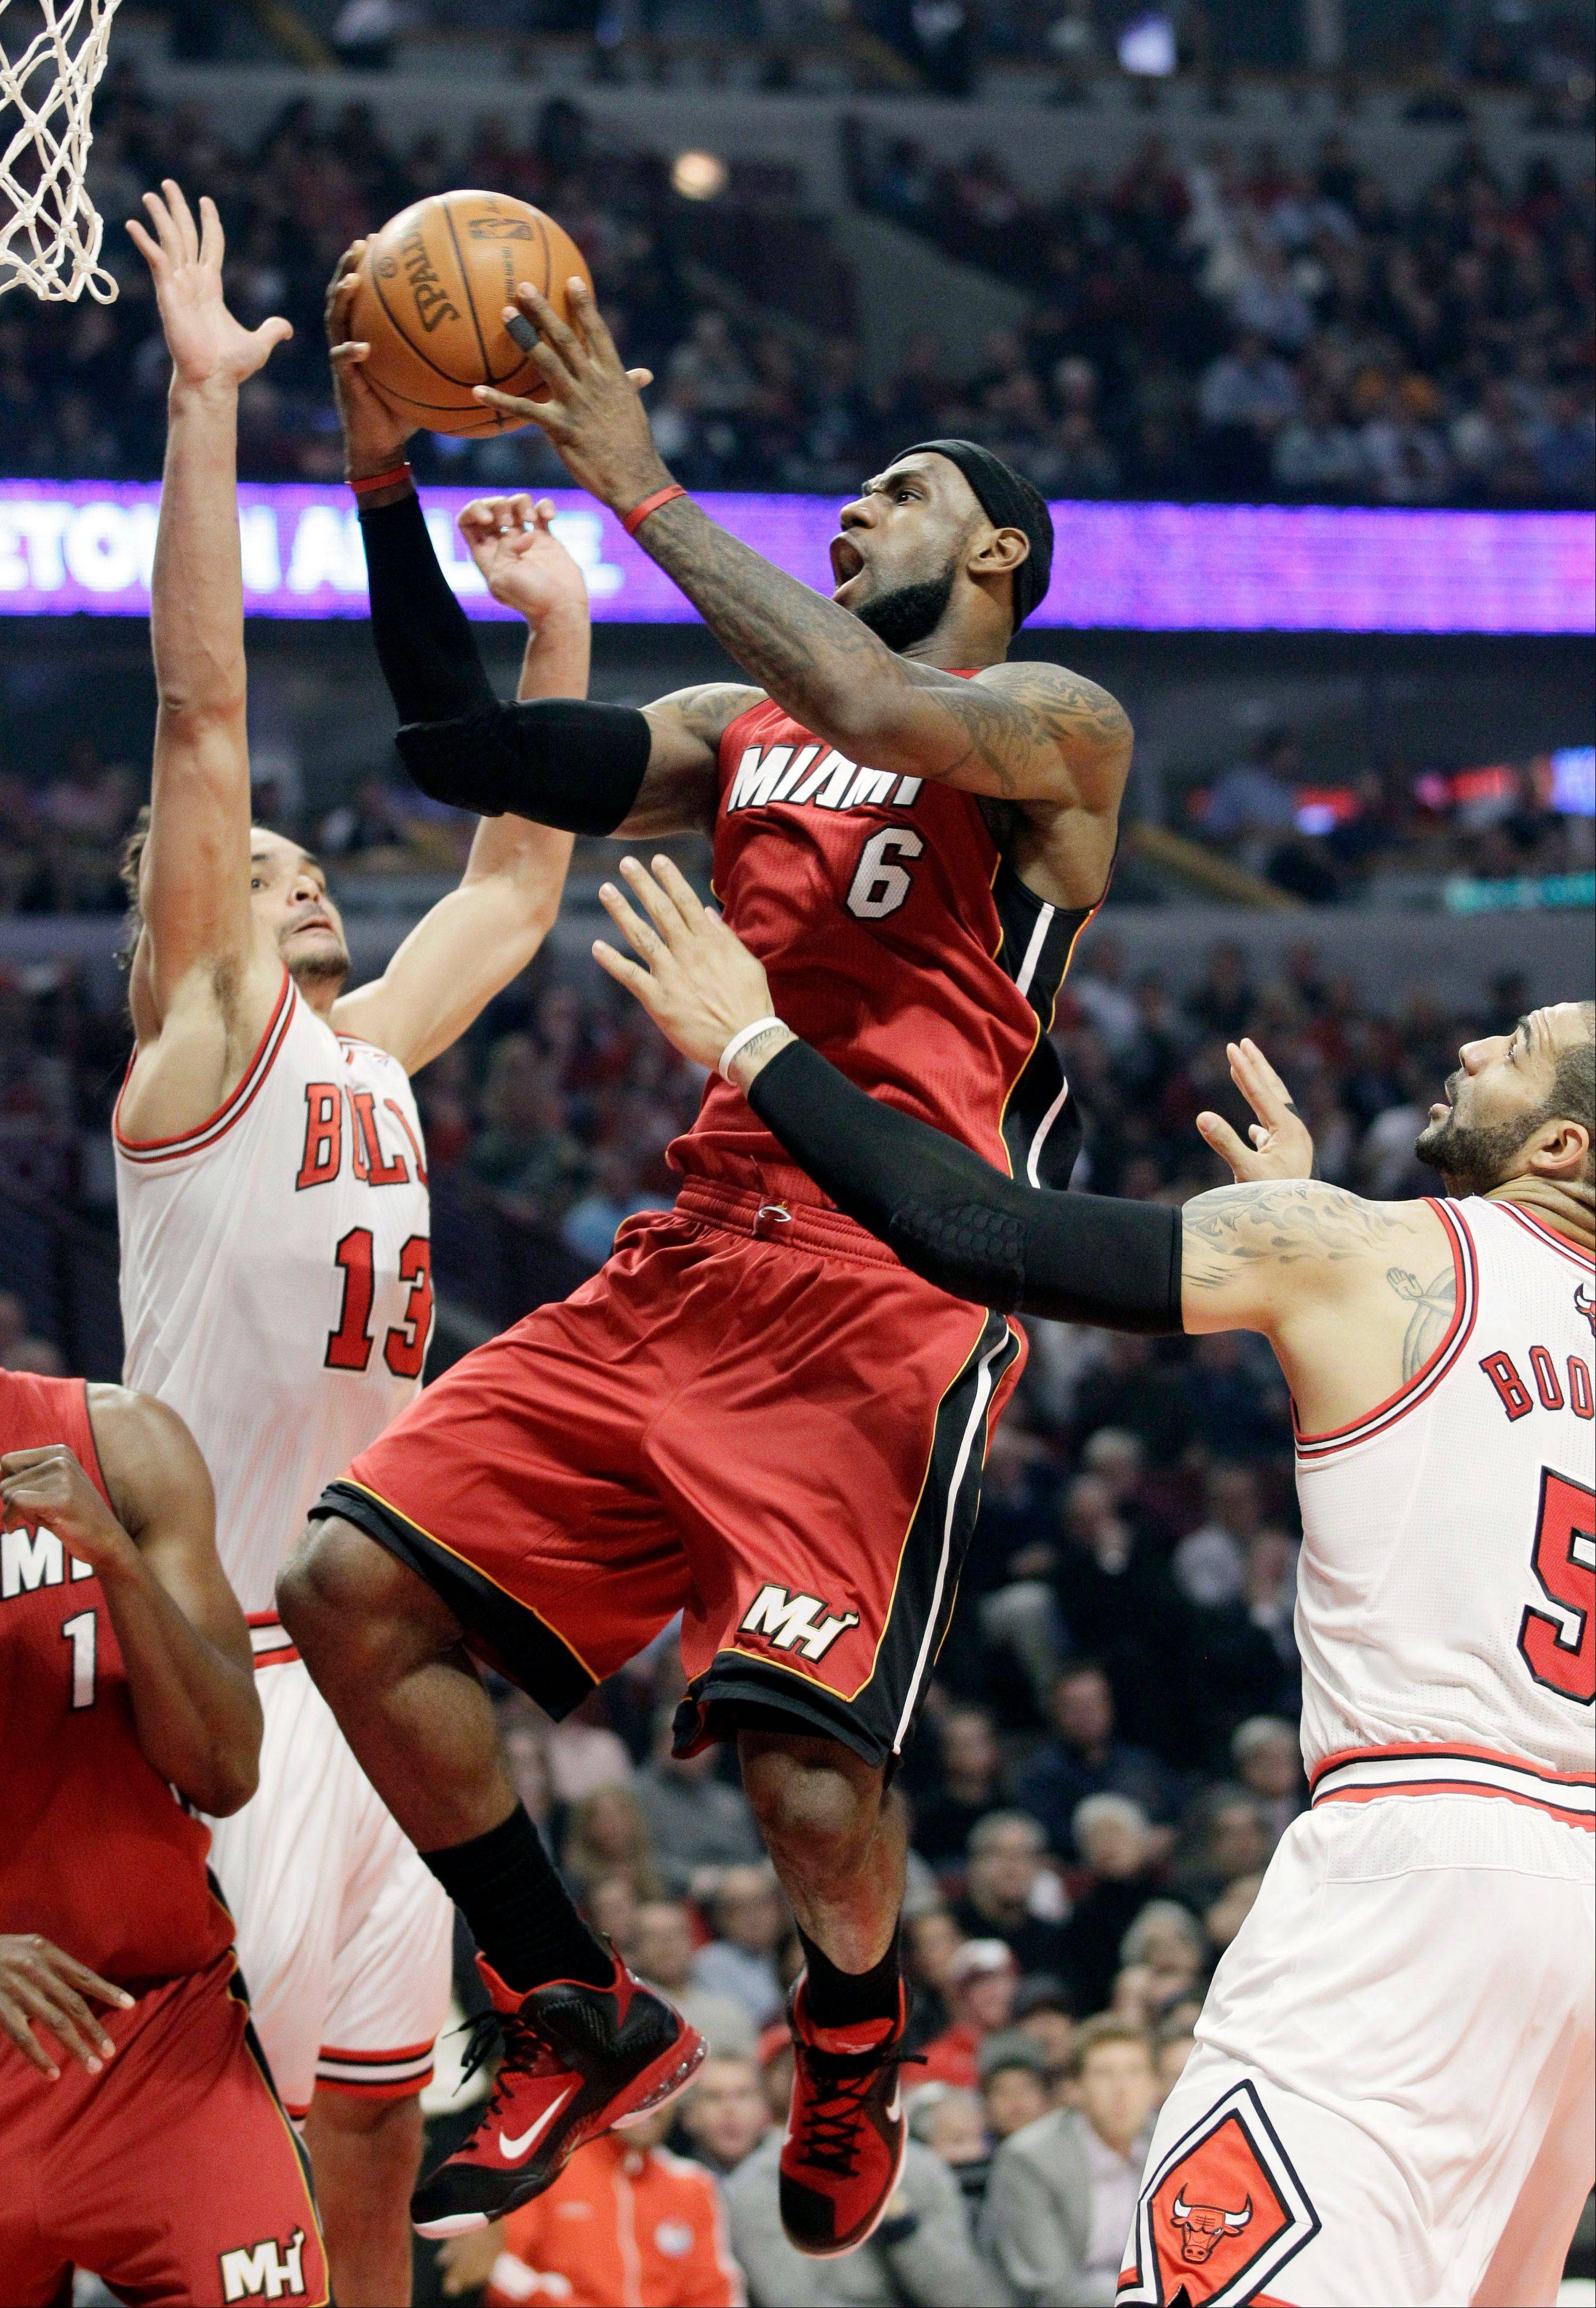 Miami forward LeBron James had a good game against the Bulls, as did Dwyane Wade and Chris Bosh, but they had nothing left for overtime. The Heat also got almost nothing from its bench. The Bulls bench outscored Miami's reserves 47-7.